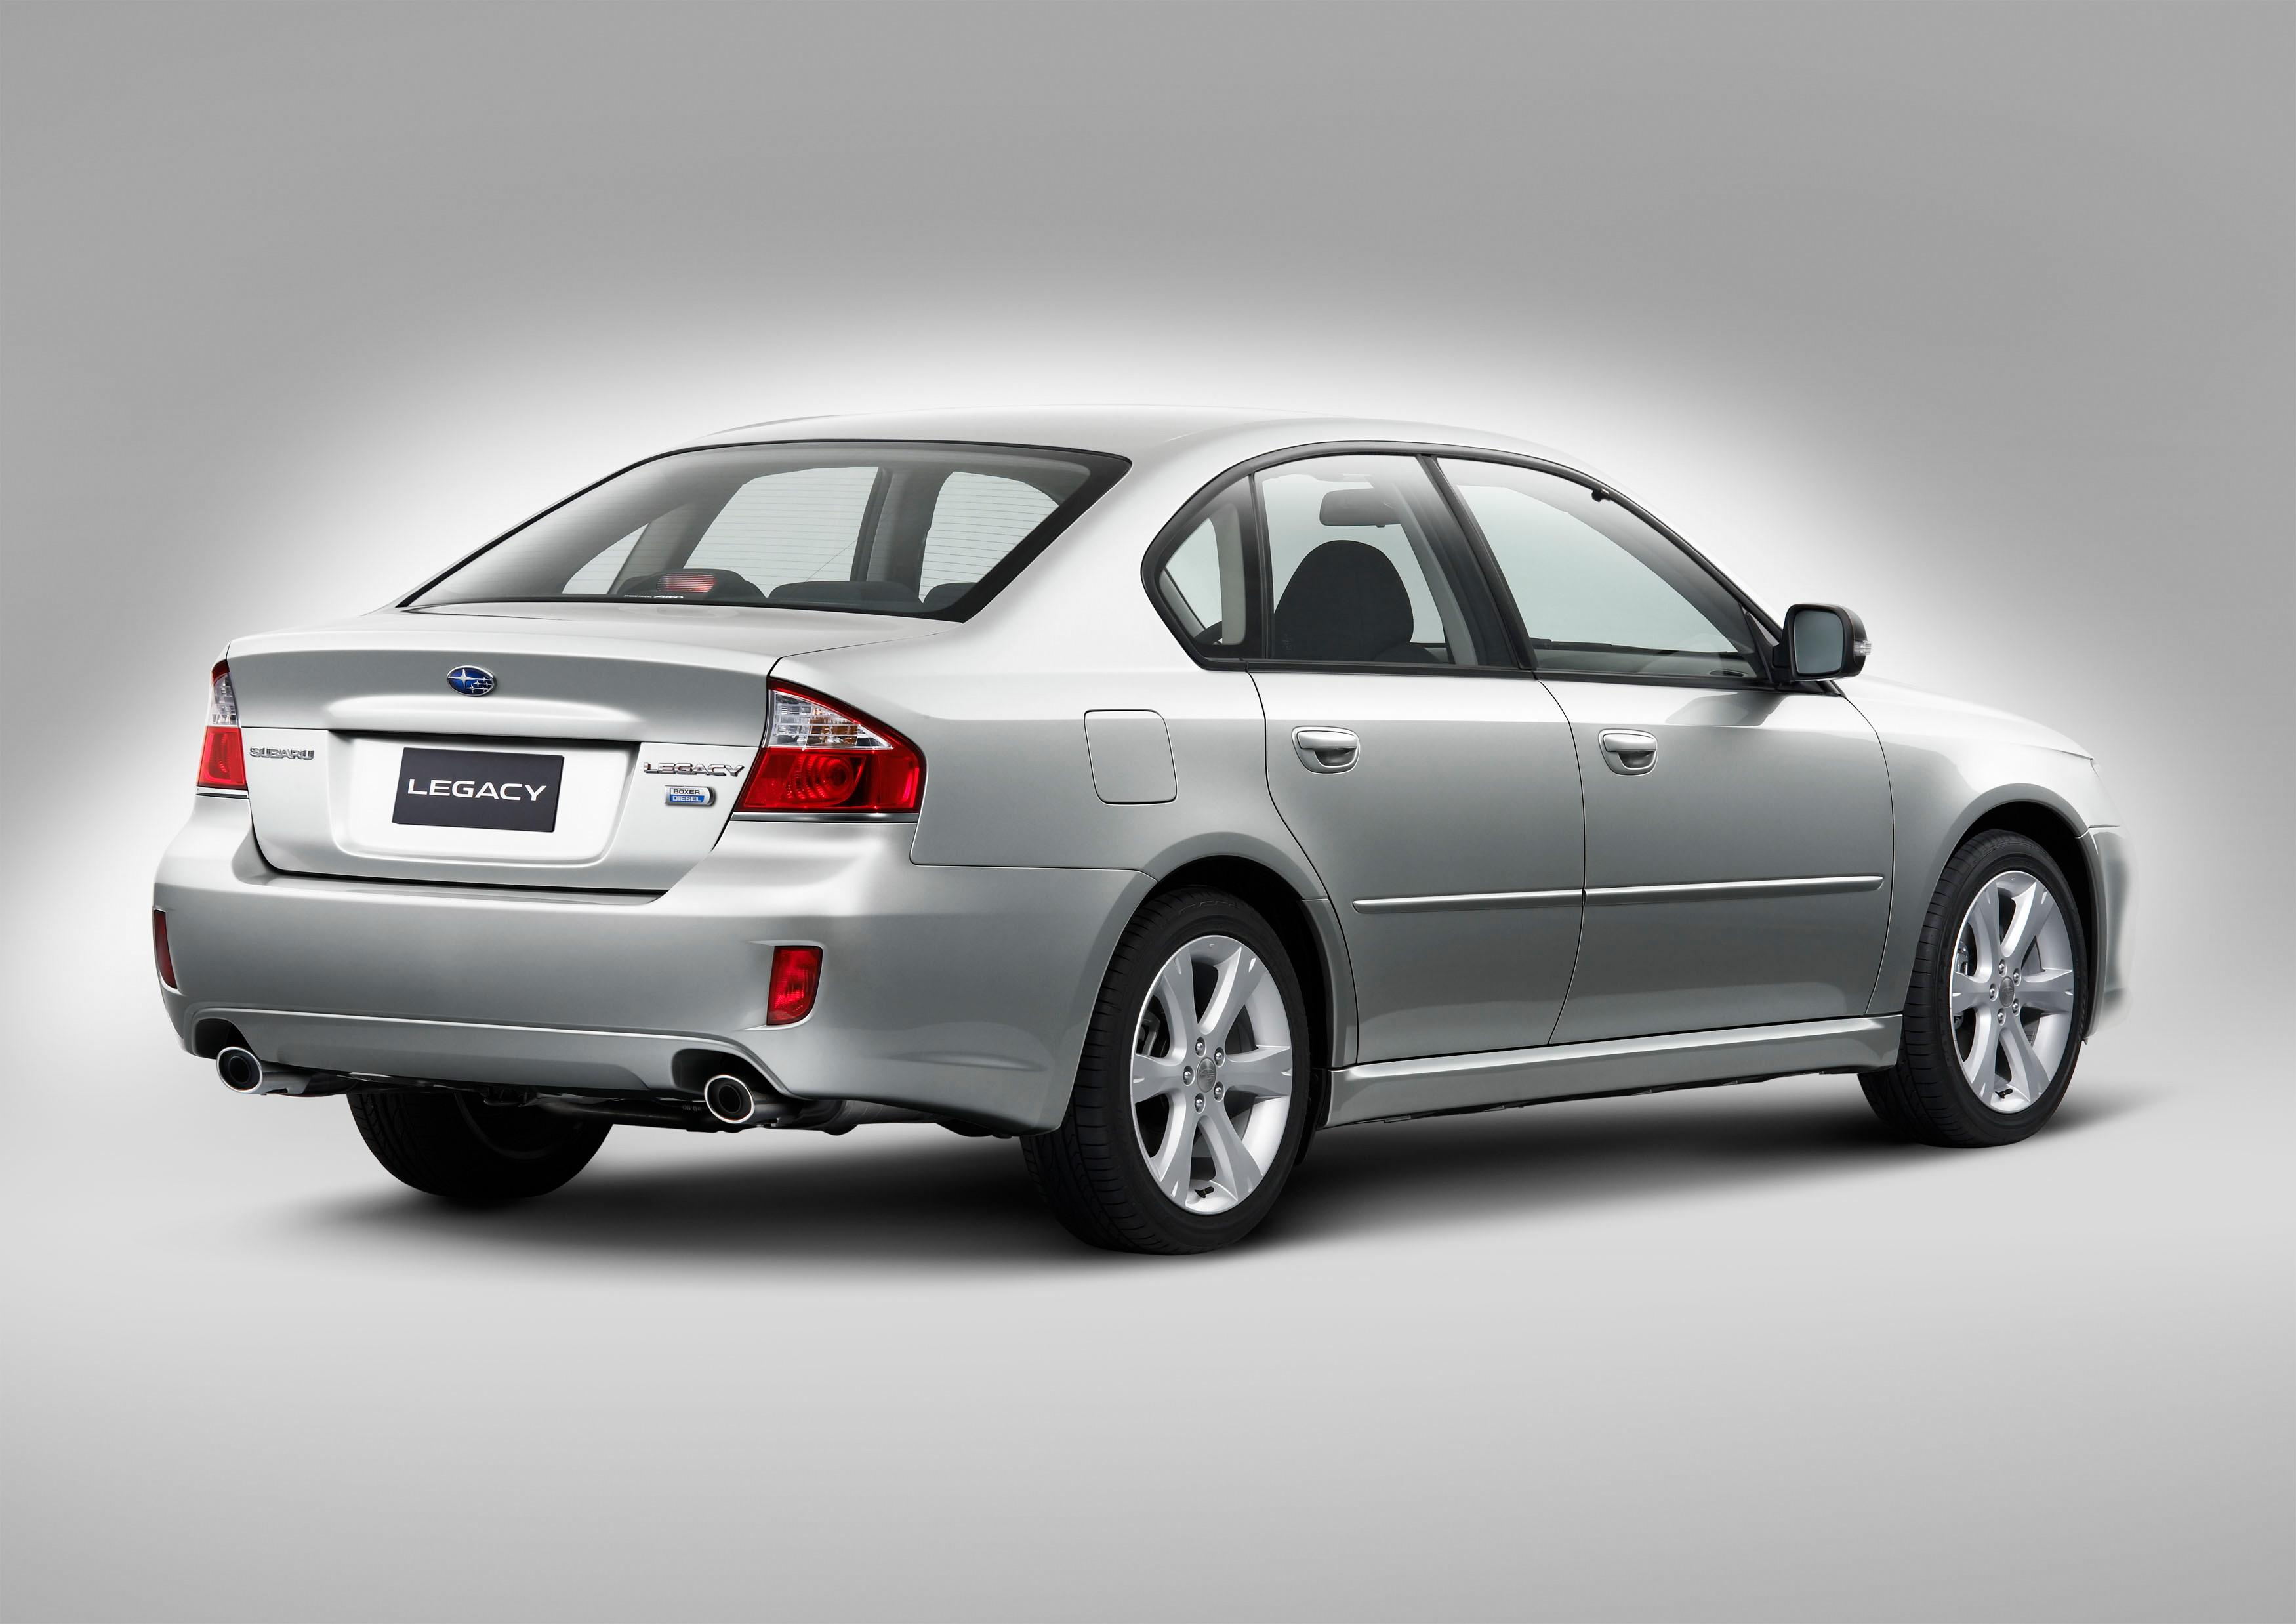 2008 Subaru Legacy 20d And Outback Top Speed Boxer Engine Diagram